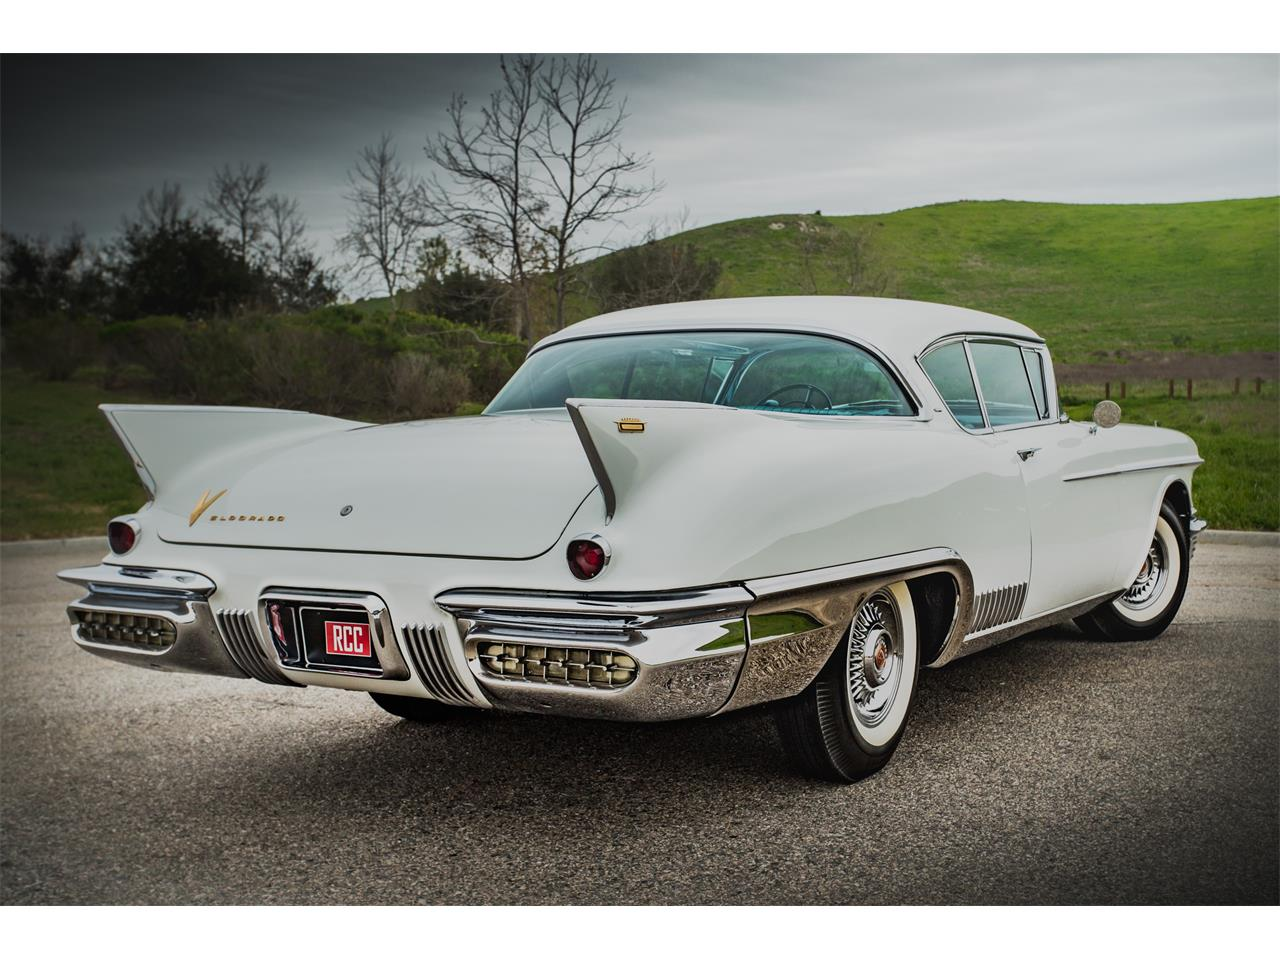 Large Picture of 1958 Cadillac Eldorado located in Irvine California - $67,900.00 Offered by Radwan Classic Cars - P4QT